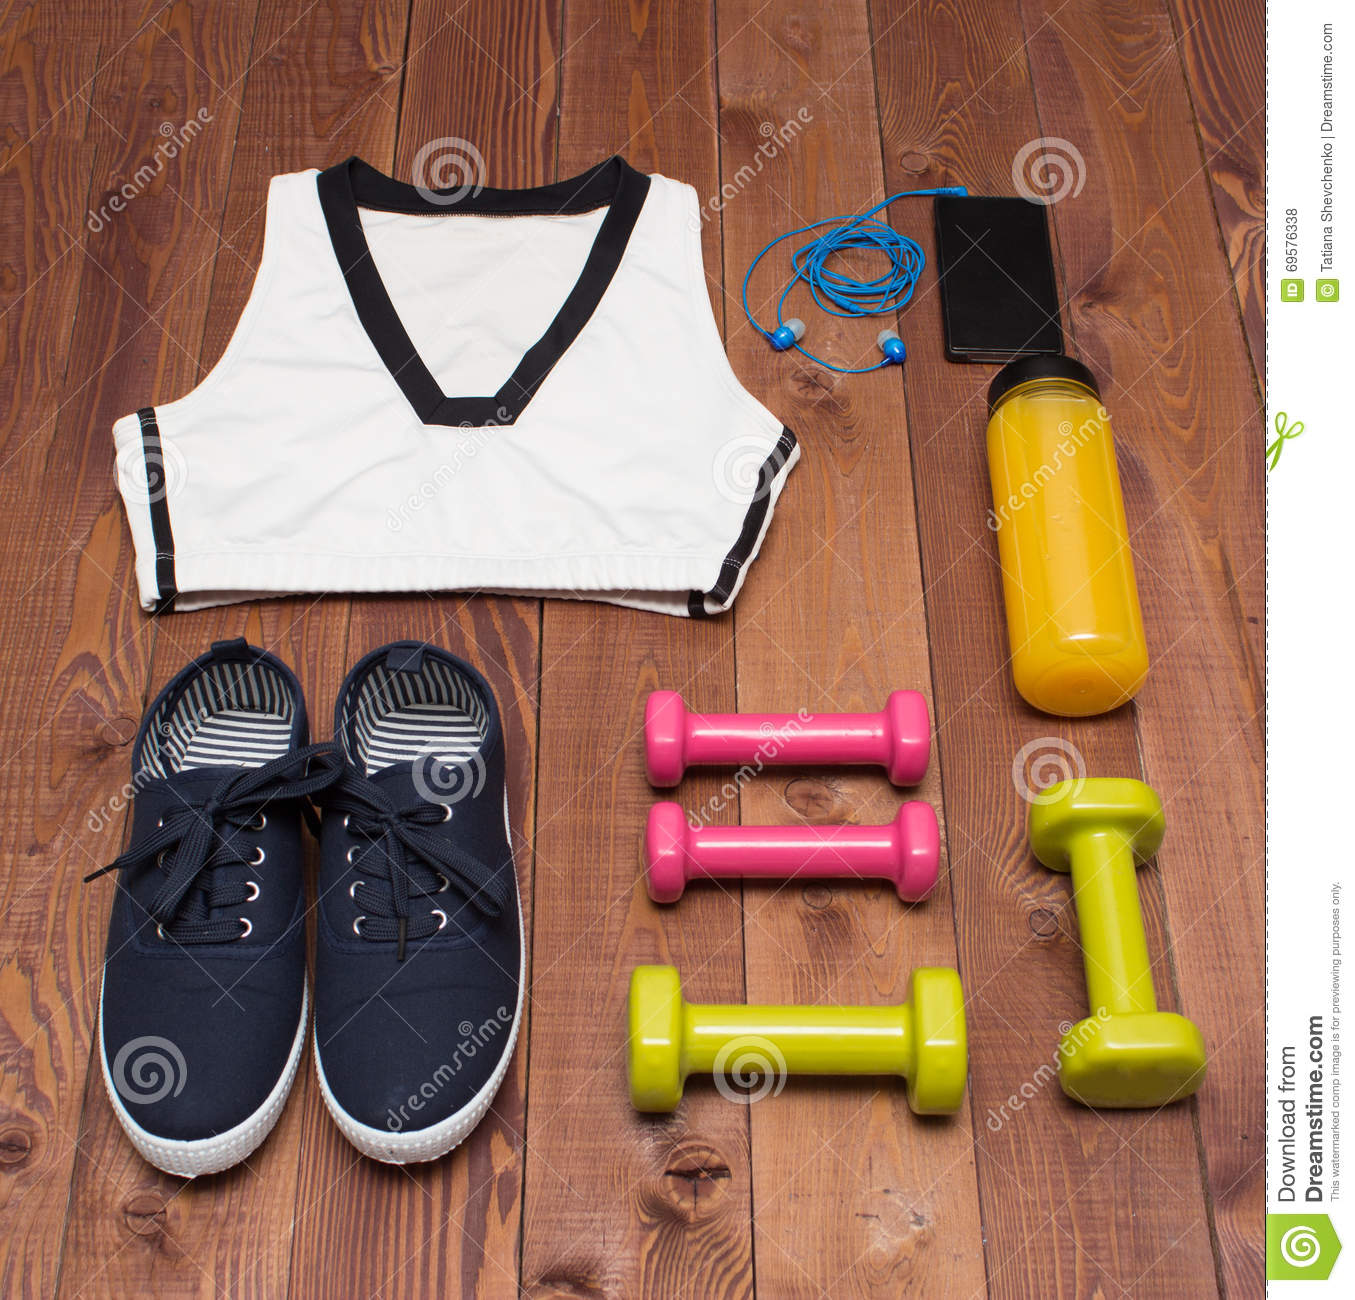 Sport Accessories: Clothes, Shoes, Weights, Bottle, Phone On